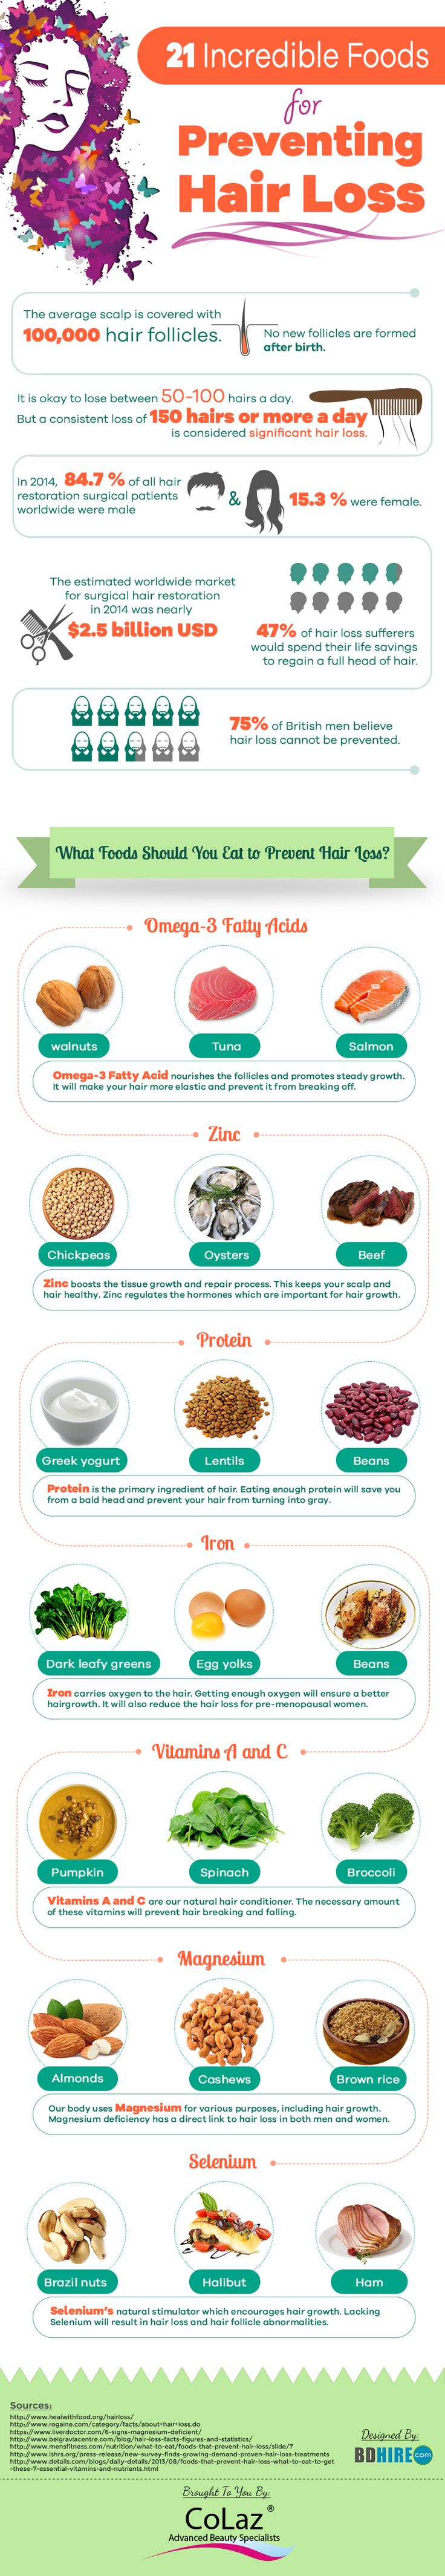 21 Incredible Foods For Preventing Hair Loss #Infographic